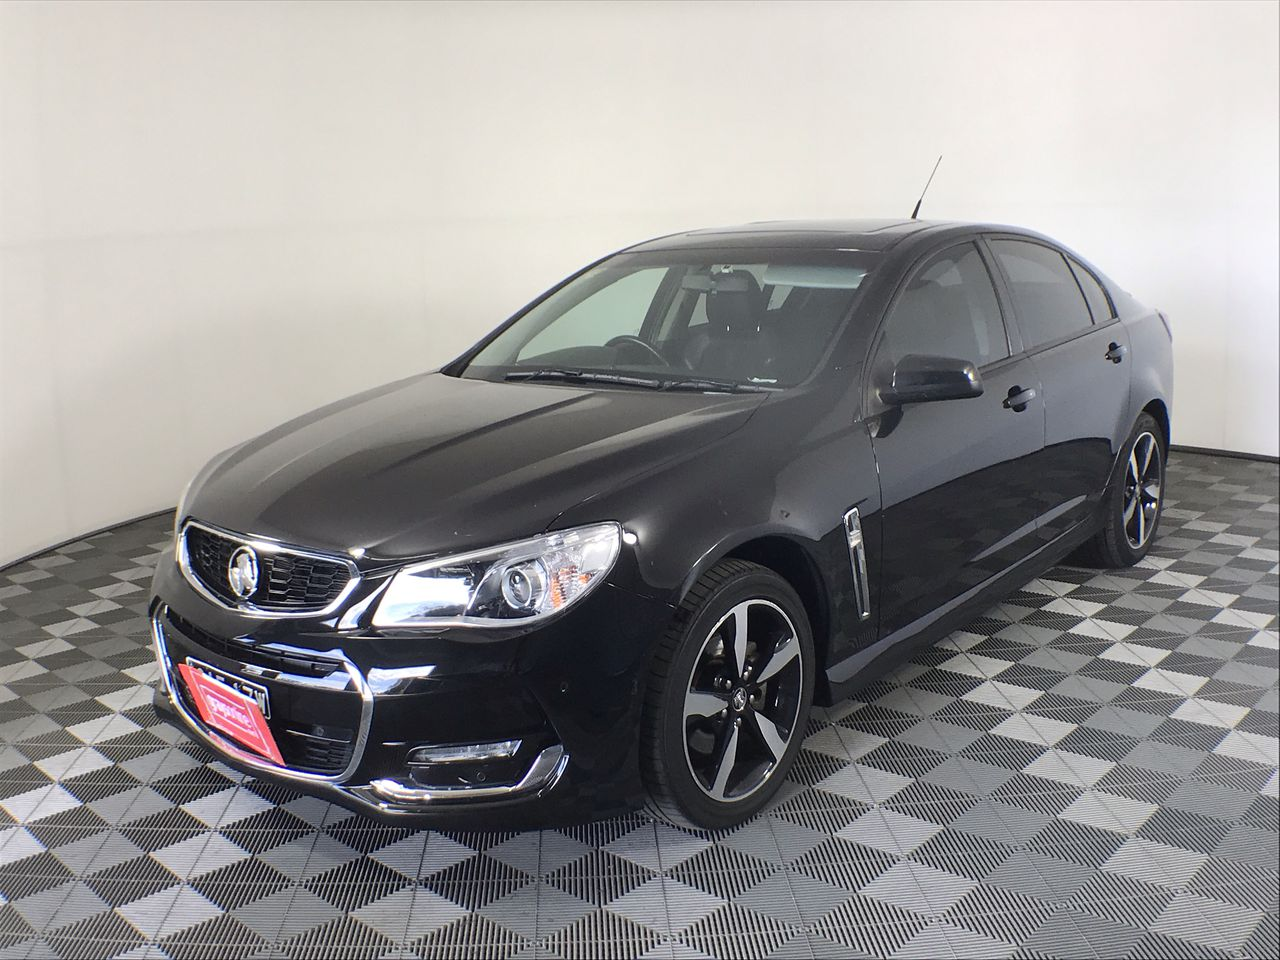 2015 Holden Commodore SV6 VF Automatic Sedan 50,866km